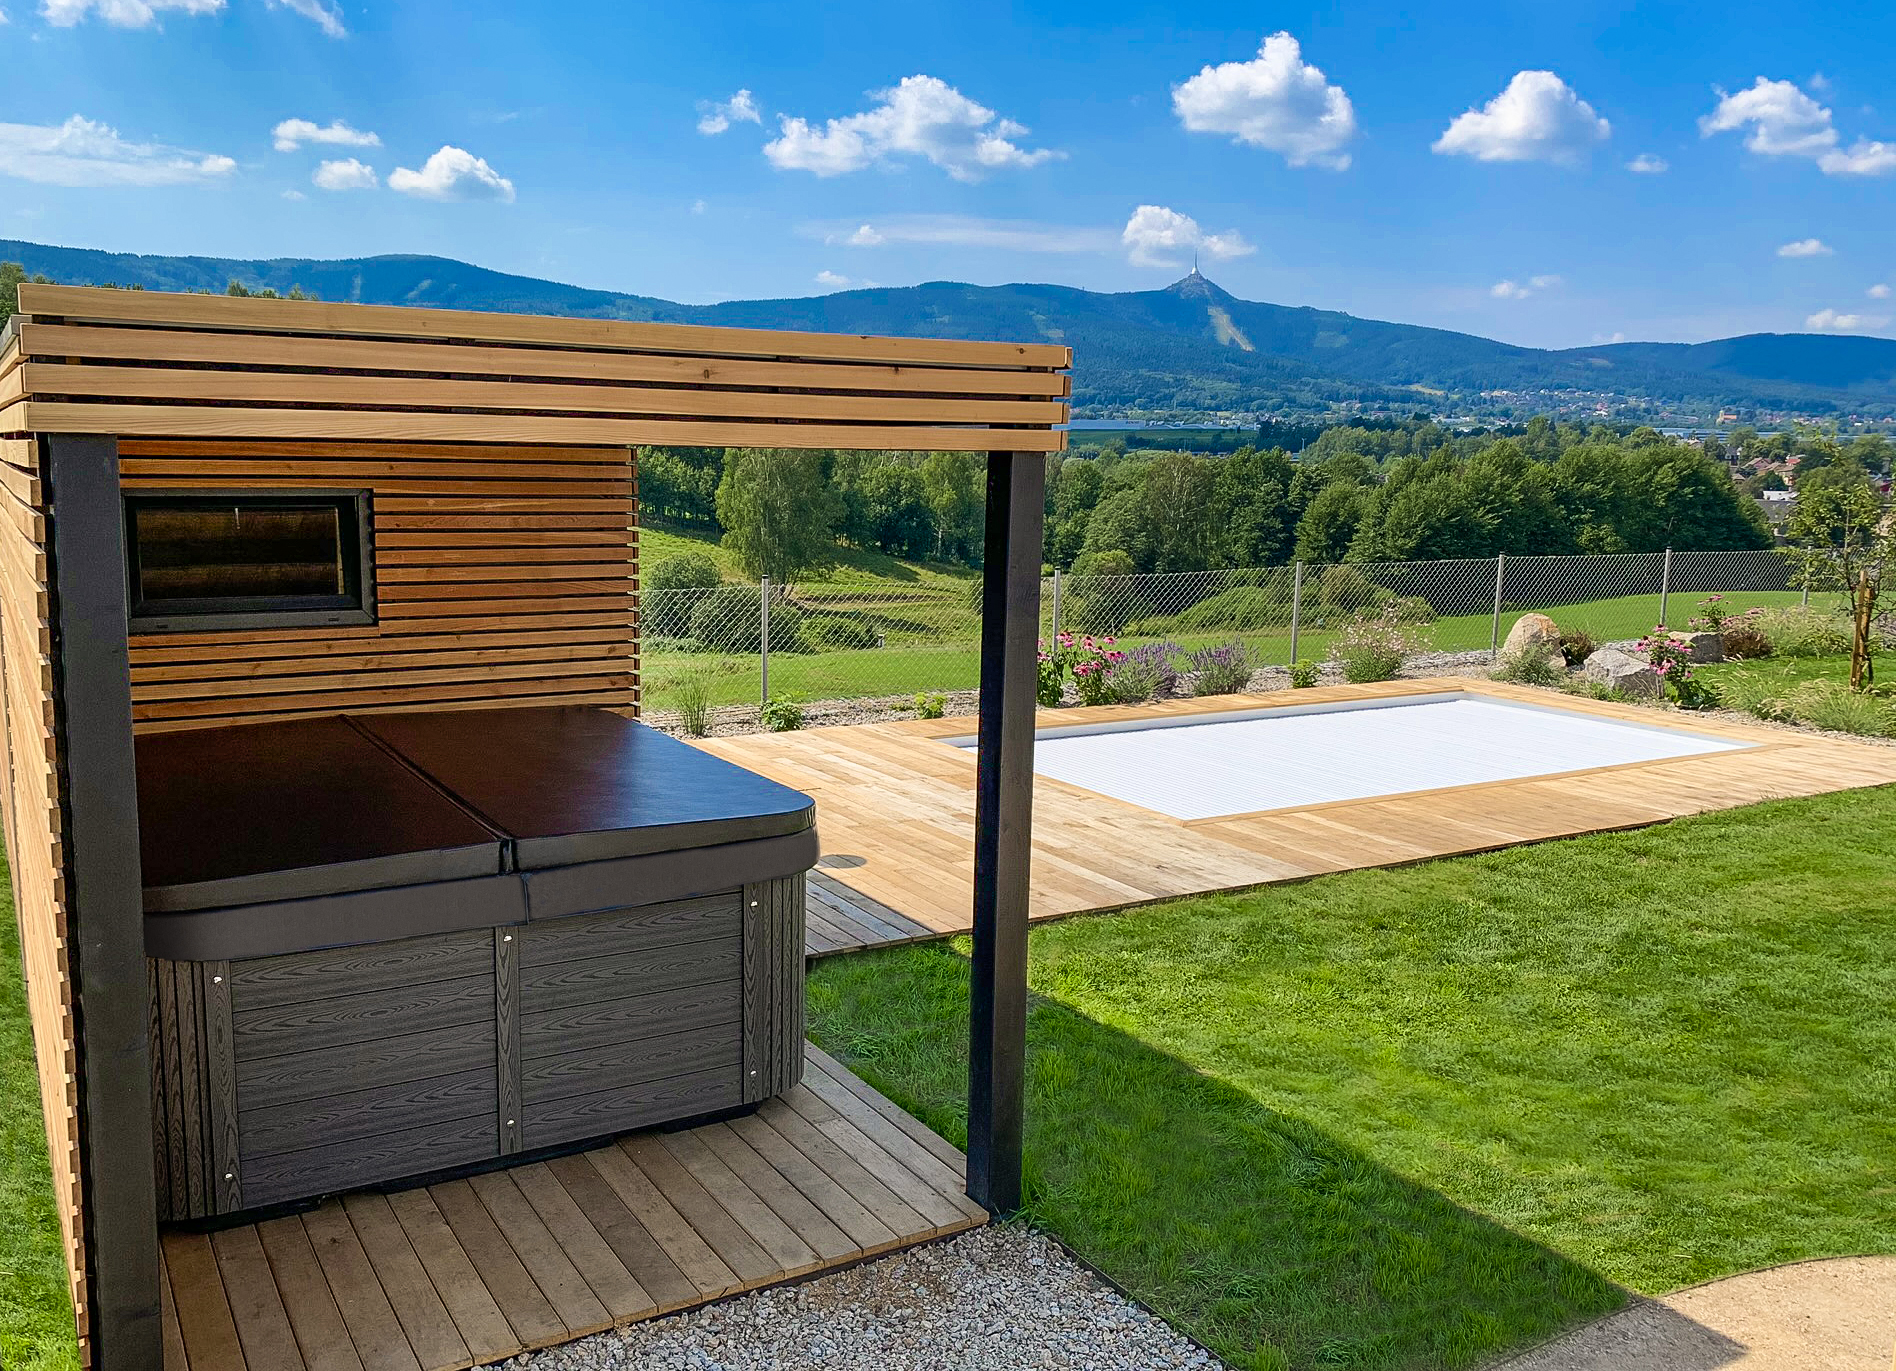 Intimate jacuzzi Canadian Spa International® - Spa Studio Czech Republic